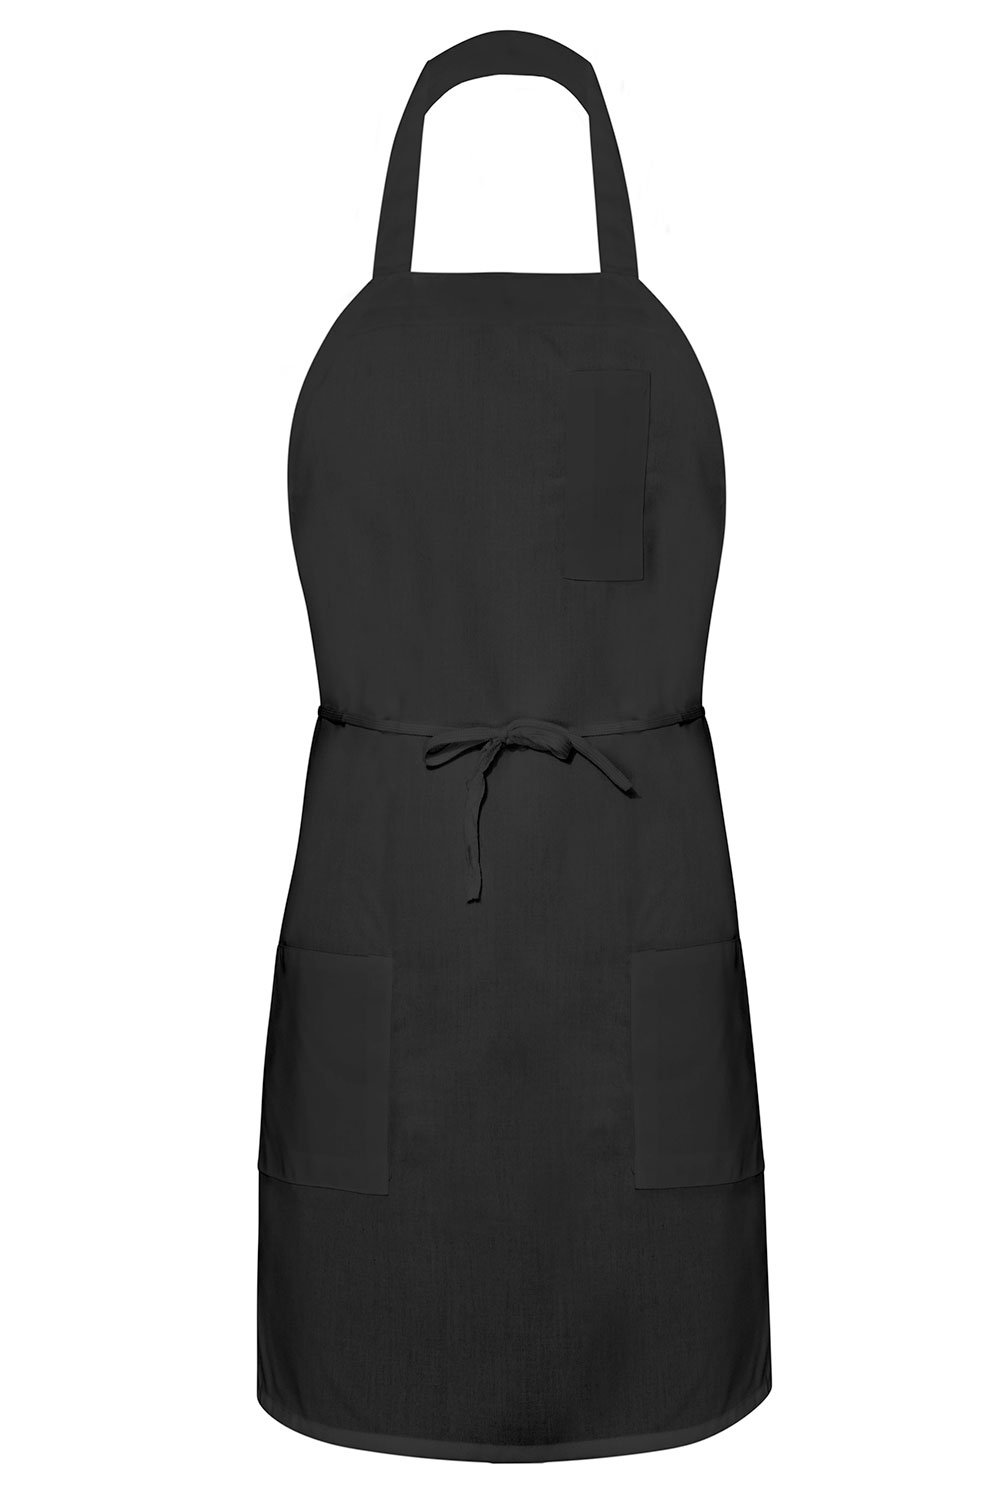 Black Bib Apron (3 Pockets)